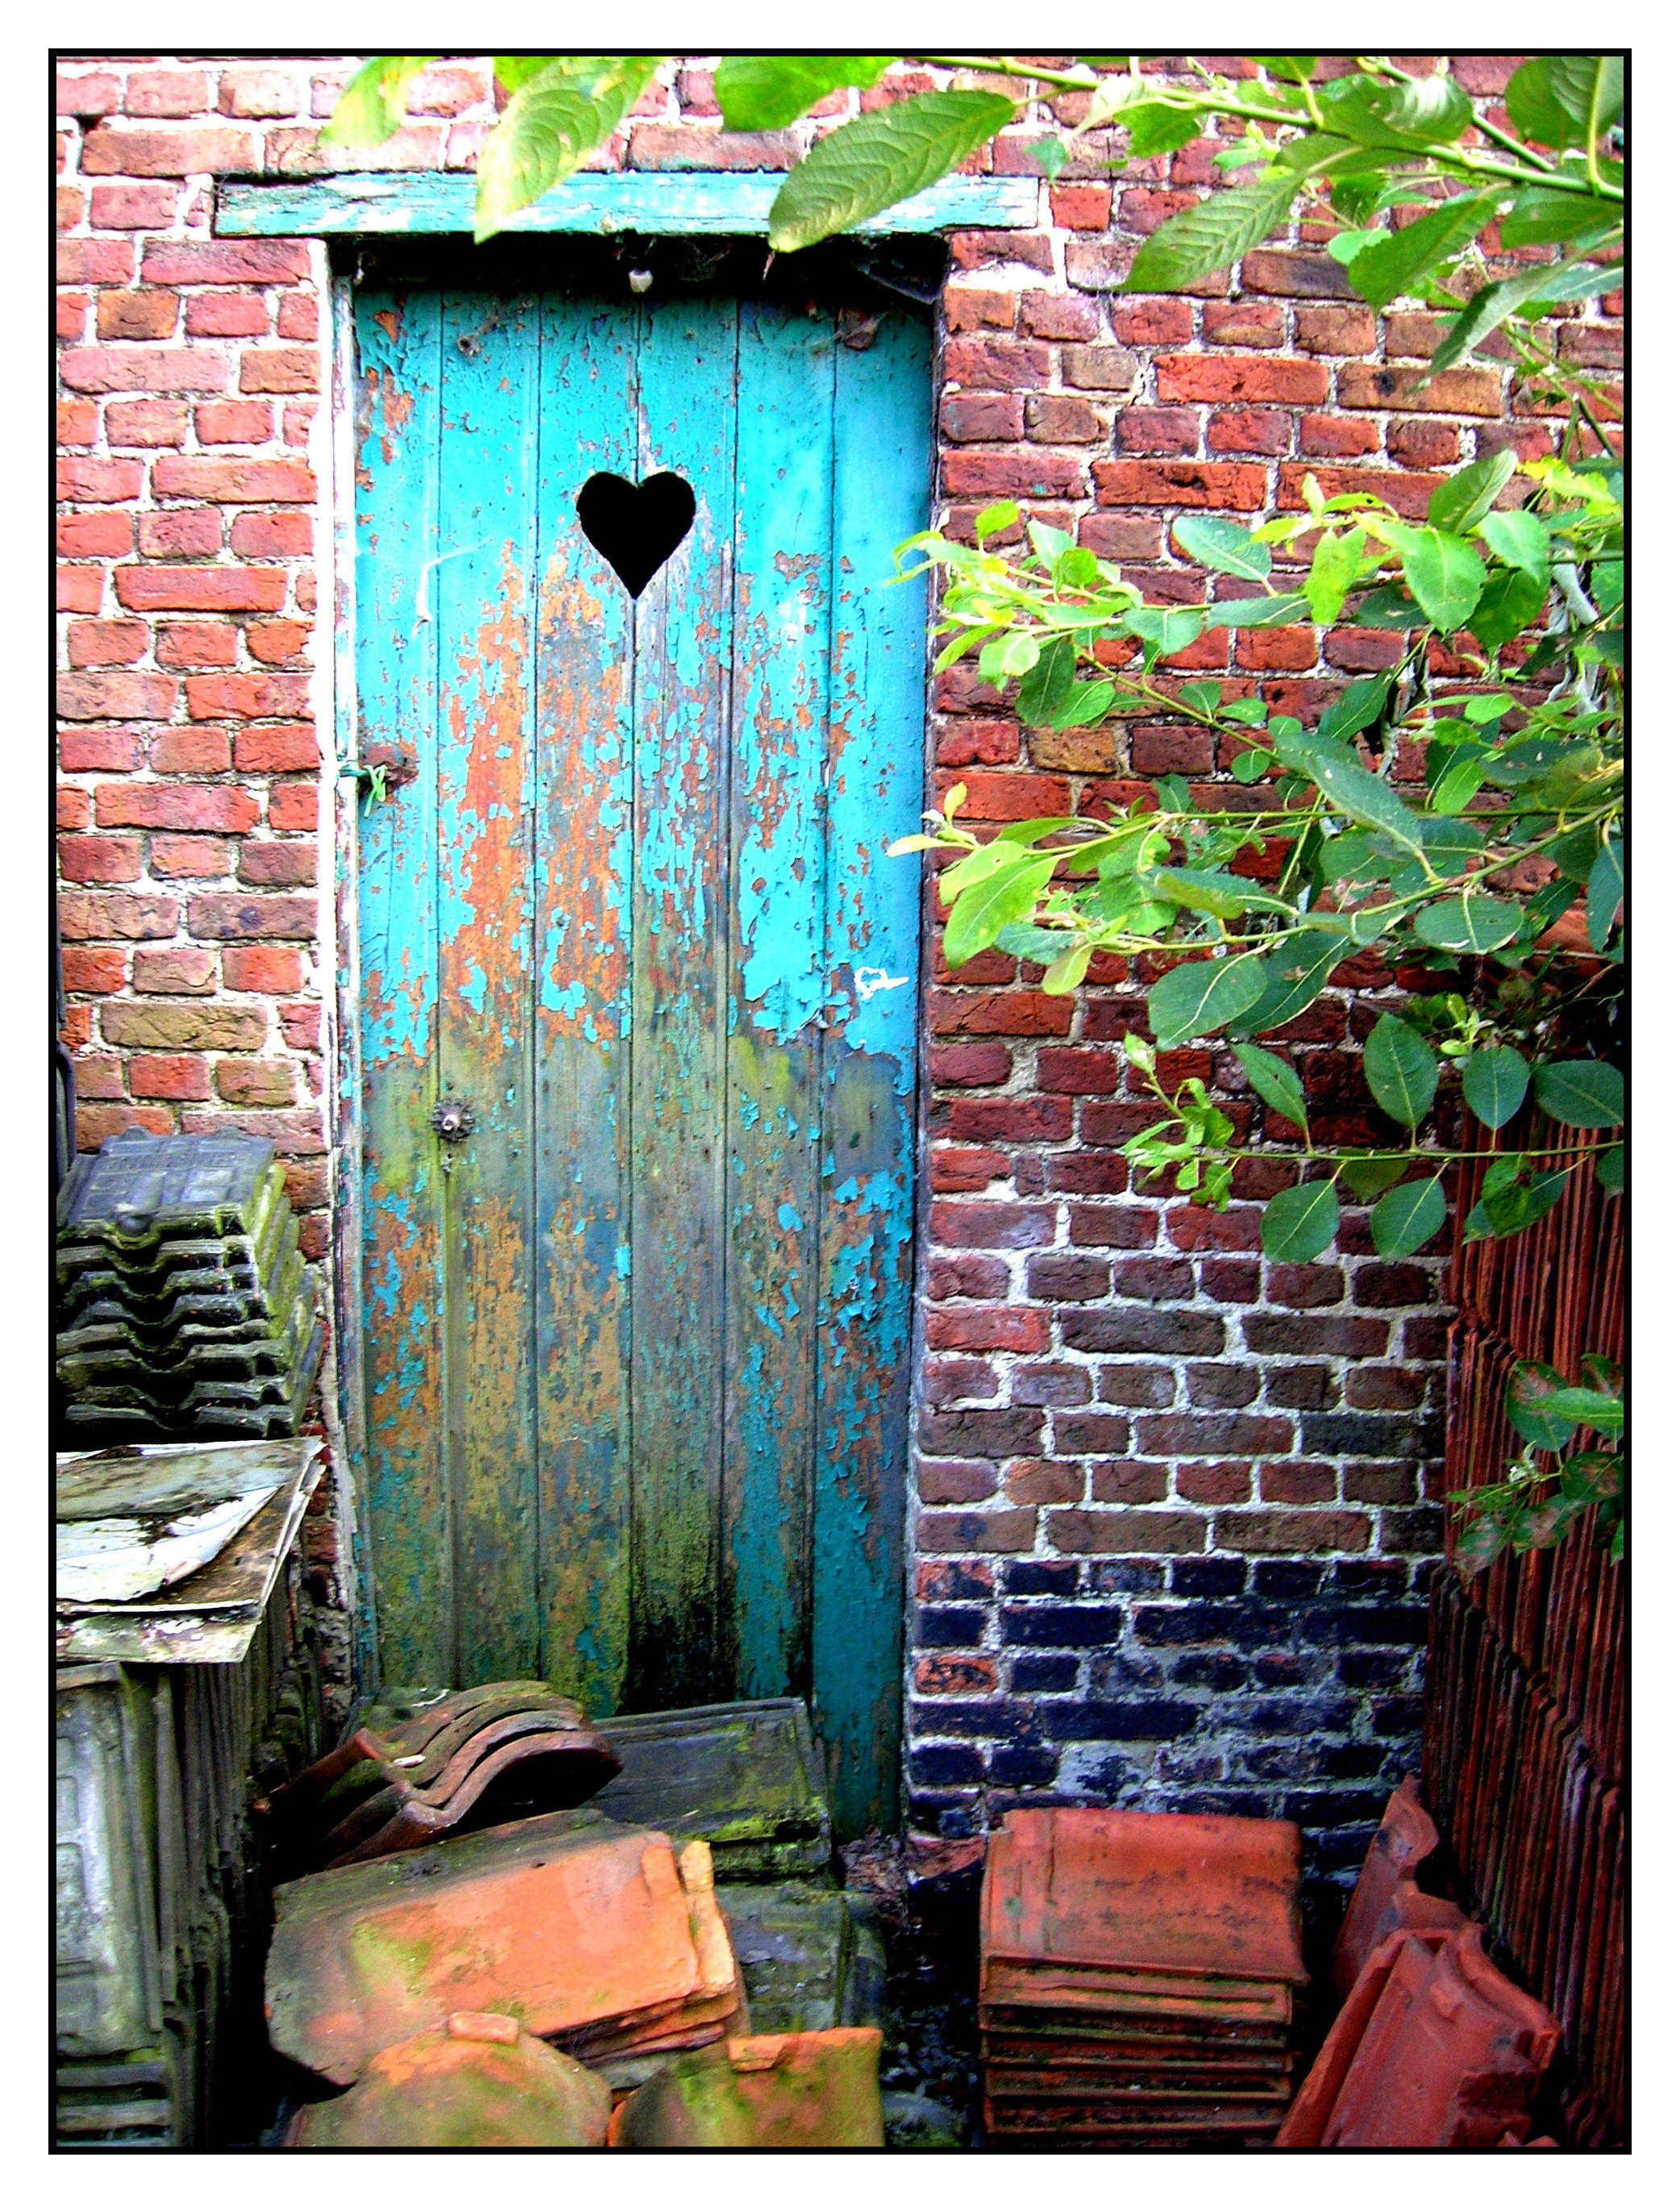 old door by anoutlaw old door by anoutlaw & old door by anoutlaw on DeviantArt